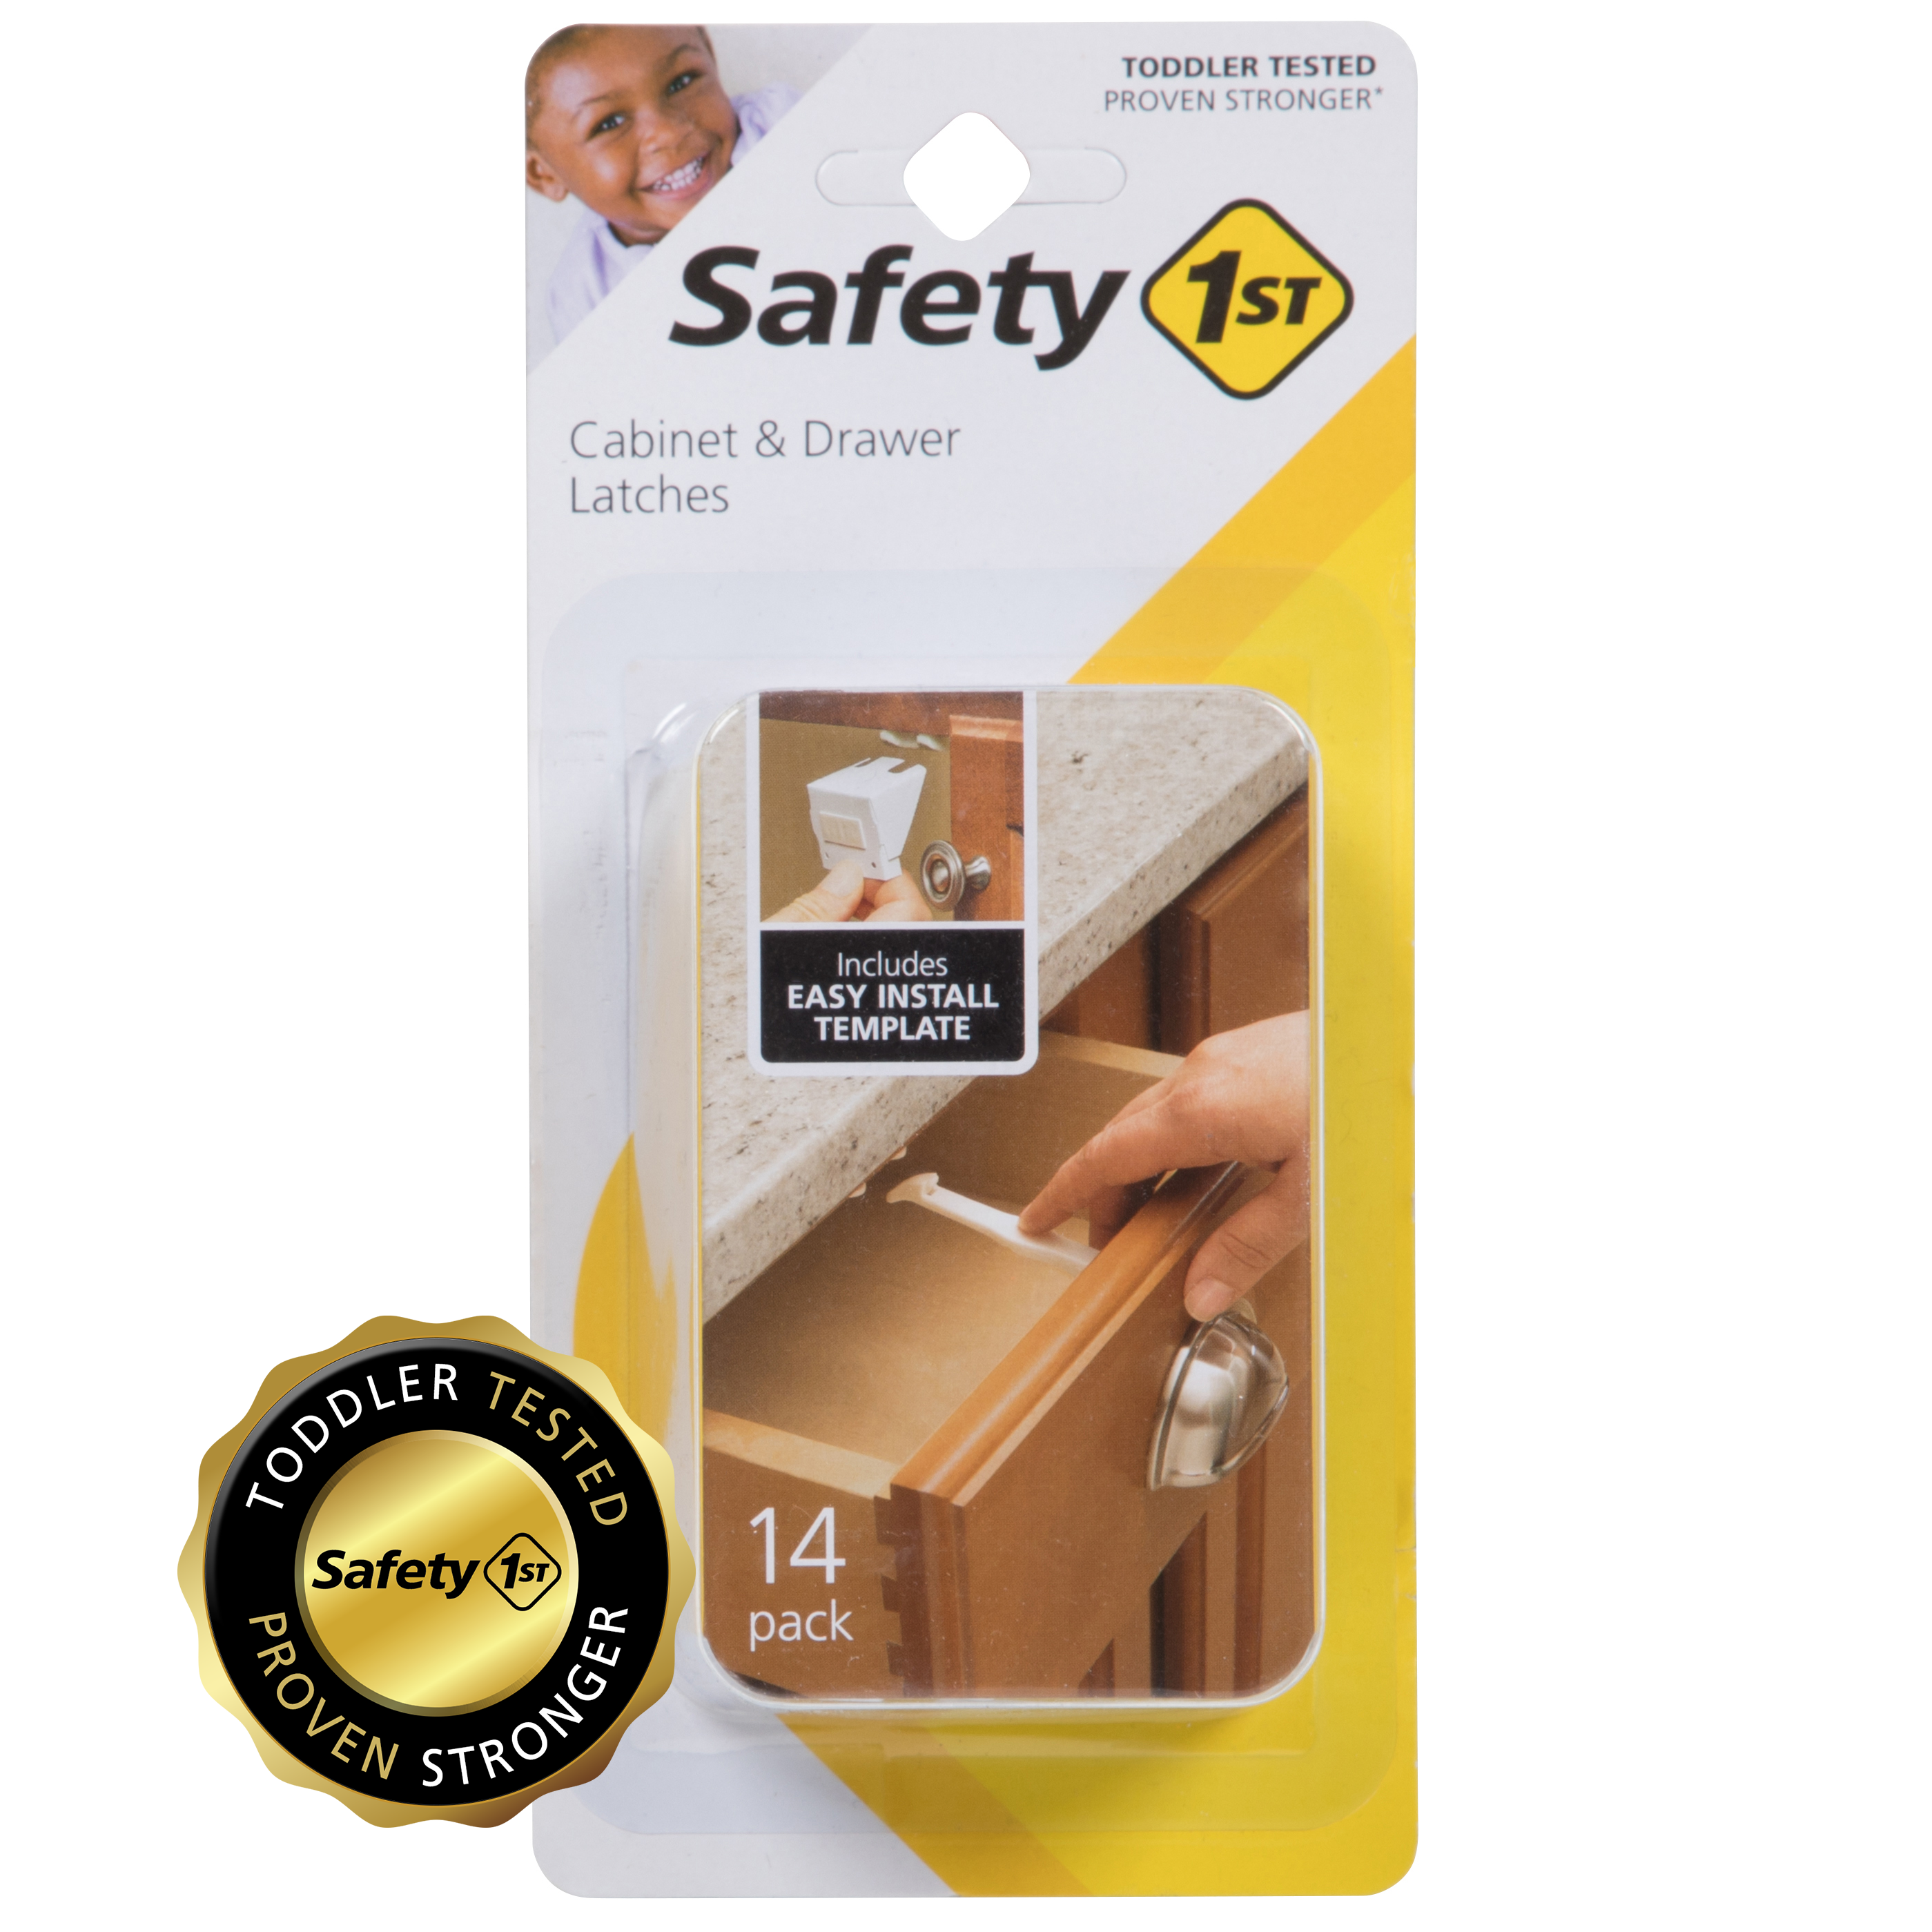 Safety 1st Cabinet & Drawer Latch (14pk), White